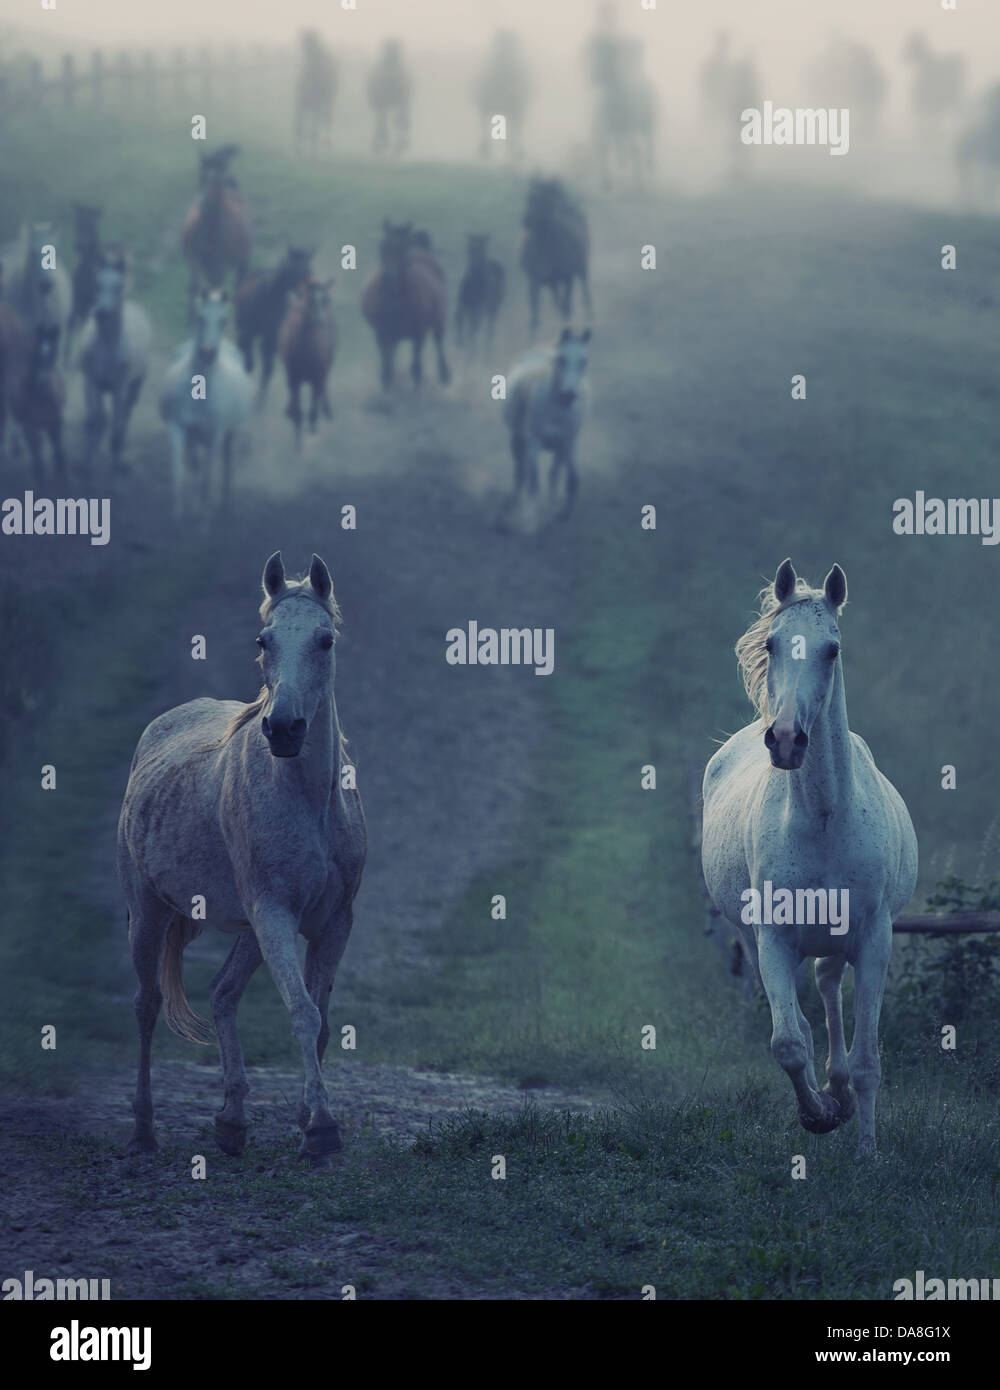 Bevy of wild horses running through the rular path - Stock Image